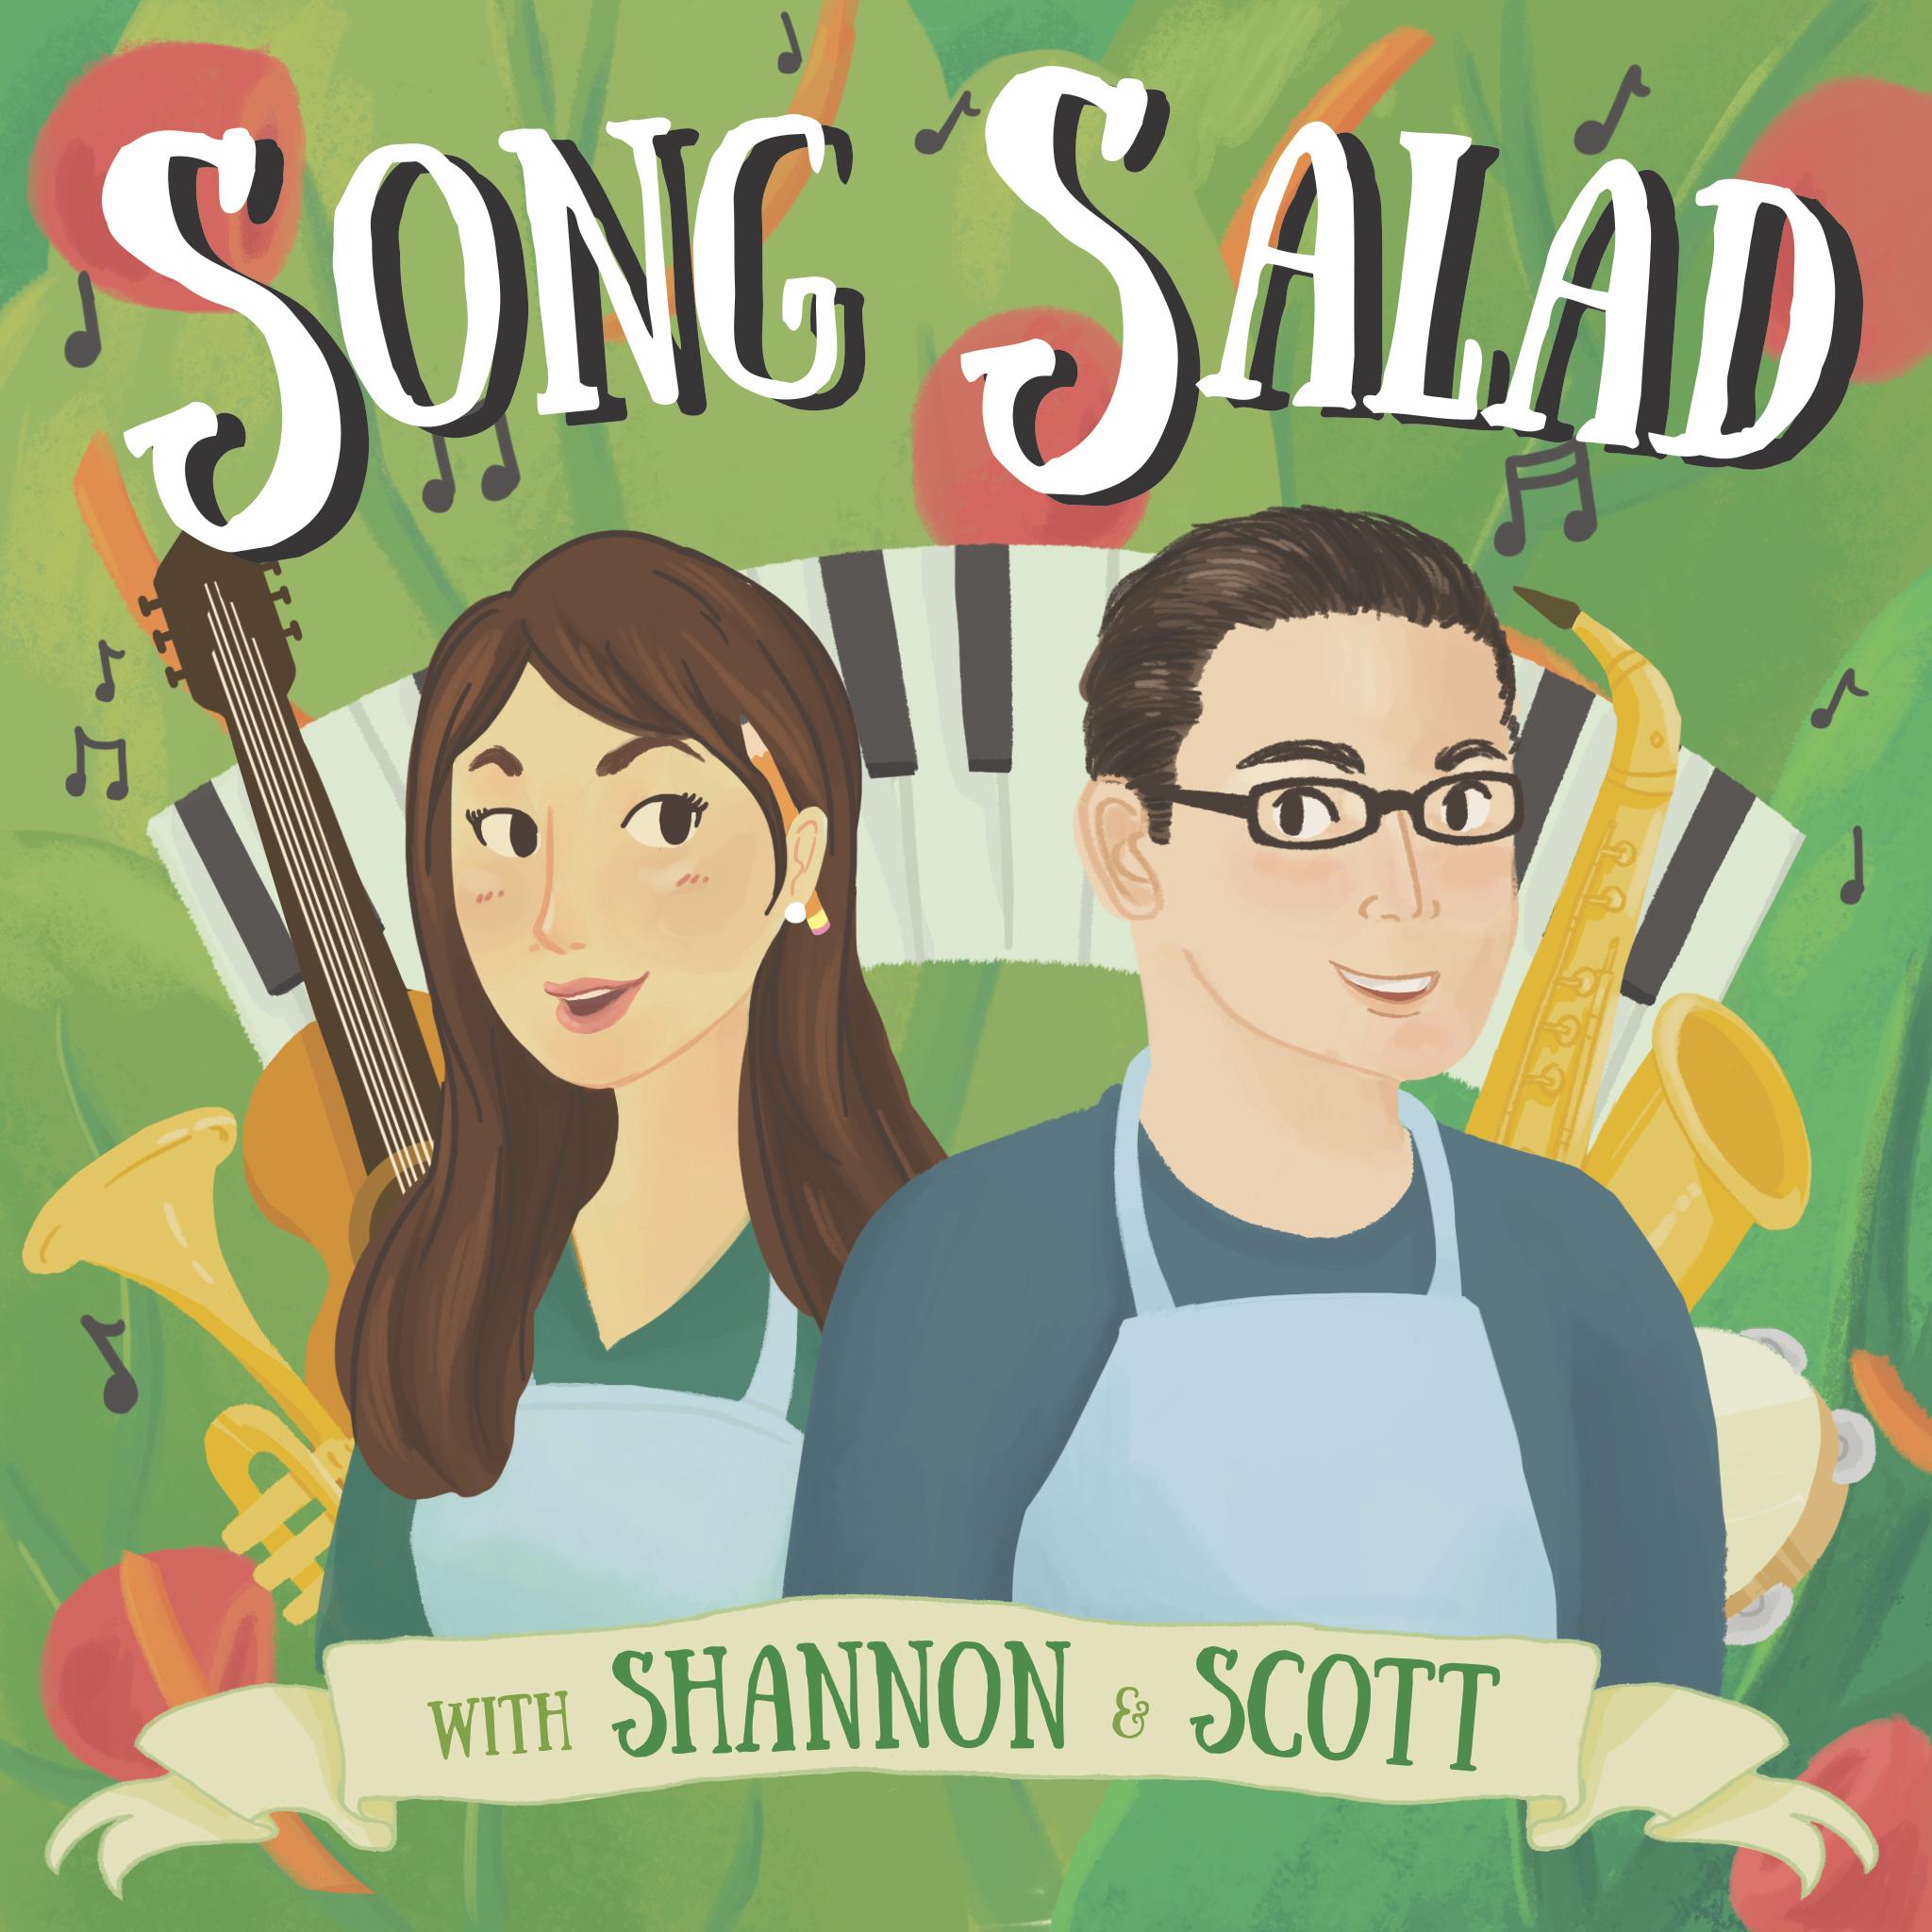 - A Song Salad is a short song about a random topic in a random style of music. Our show documents the writing process for these strange songs and even teaches you a bit about music along the way.Each week, we randomize our list of 500 music genres to pick a style, and then we hit